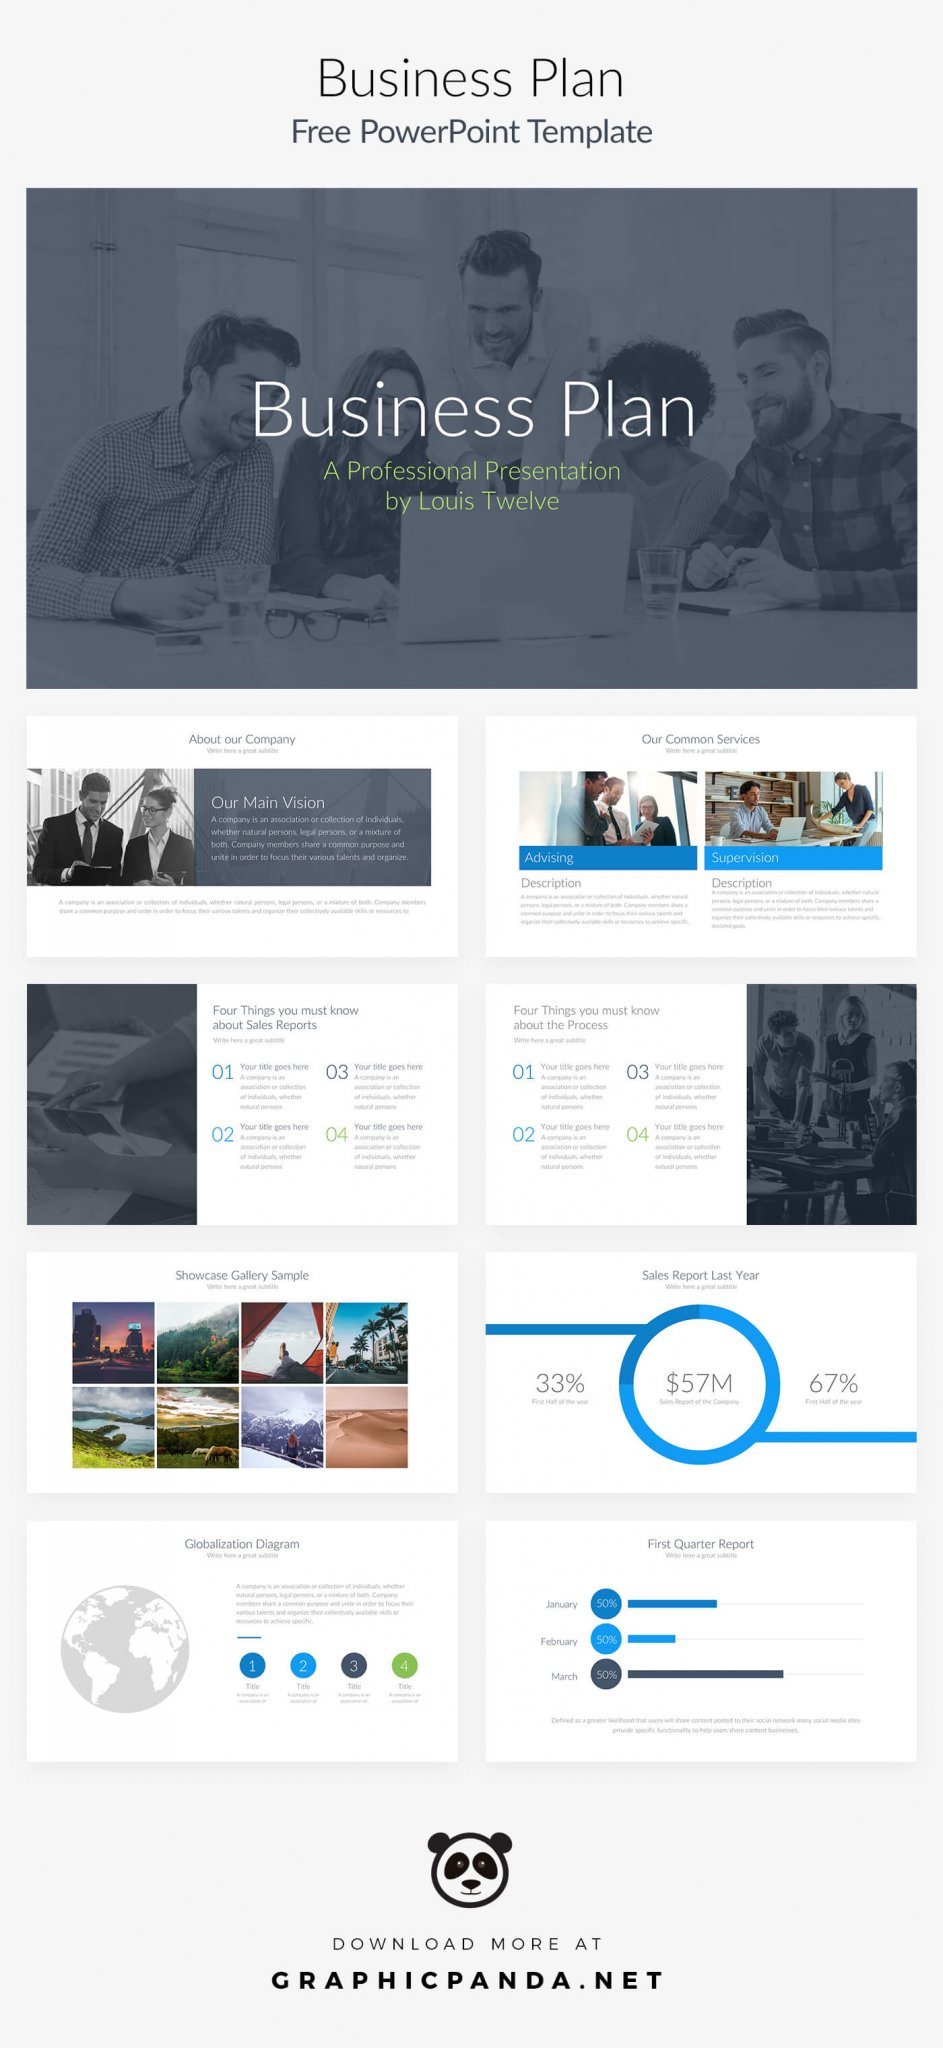 Free Business Plan PowerPoint Presentation Template - Business plan powerpoint template free